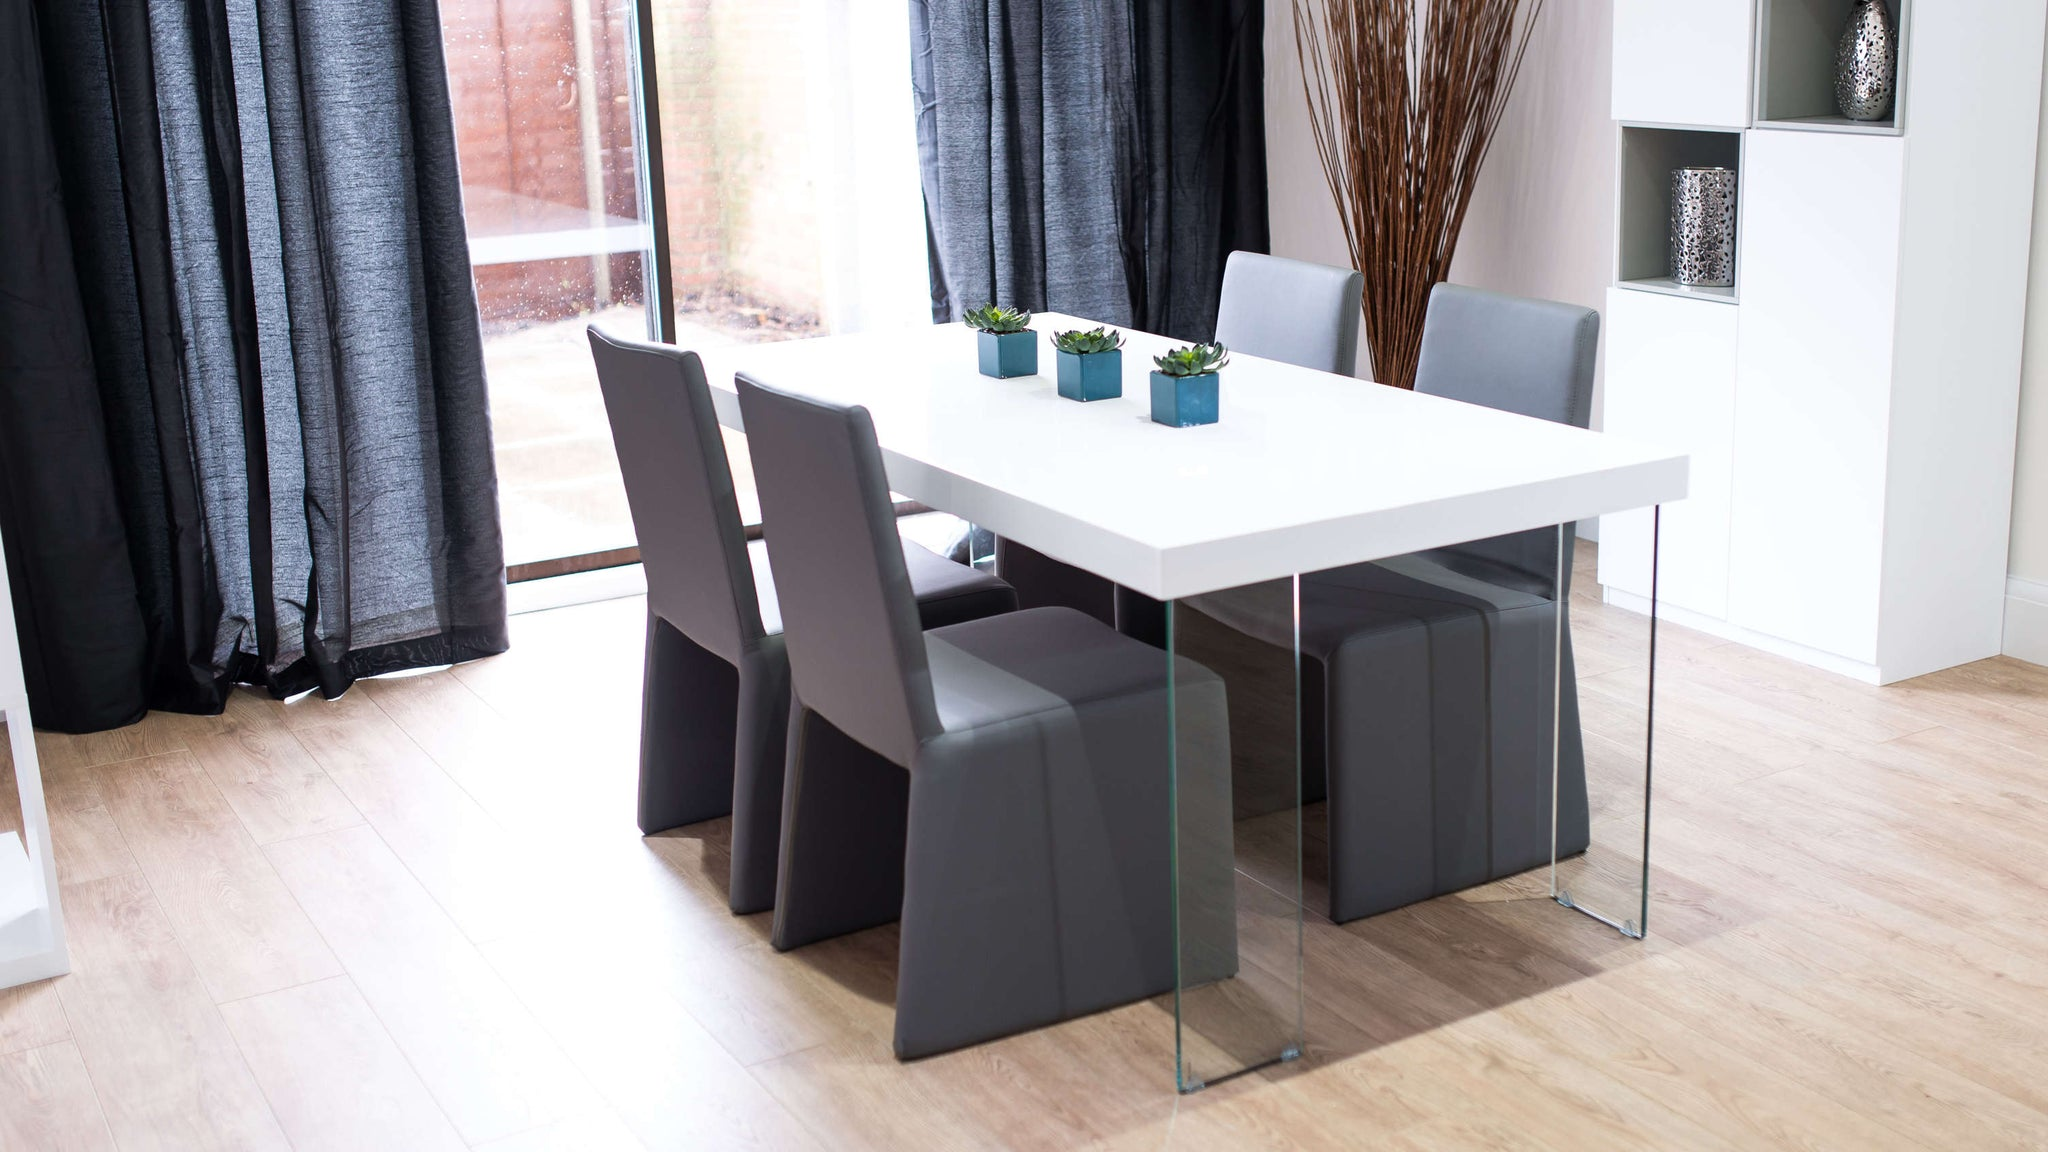 Stylish White Gloss Floating Dining Table and Grey Chairs